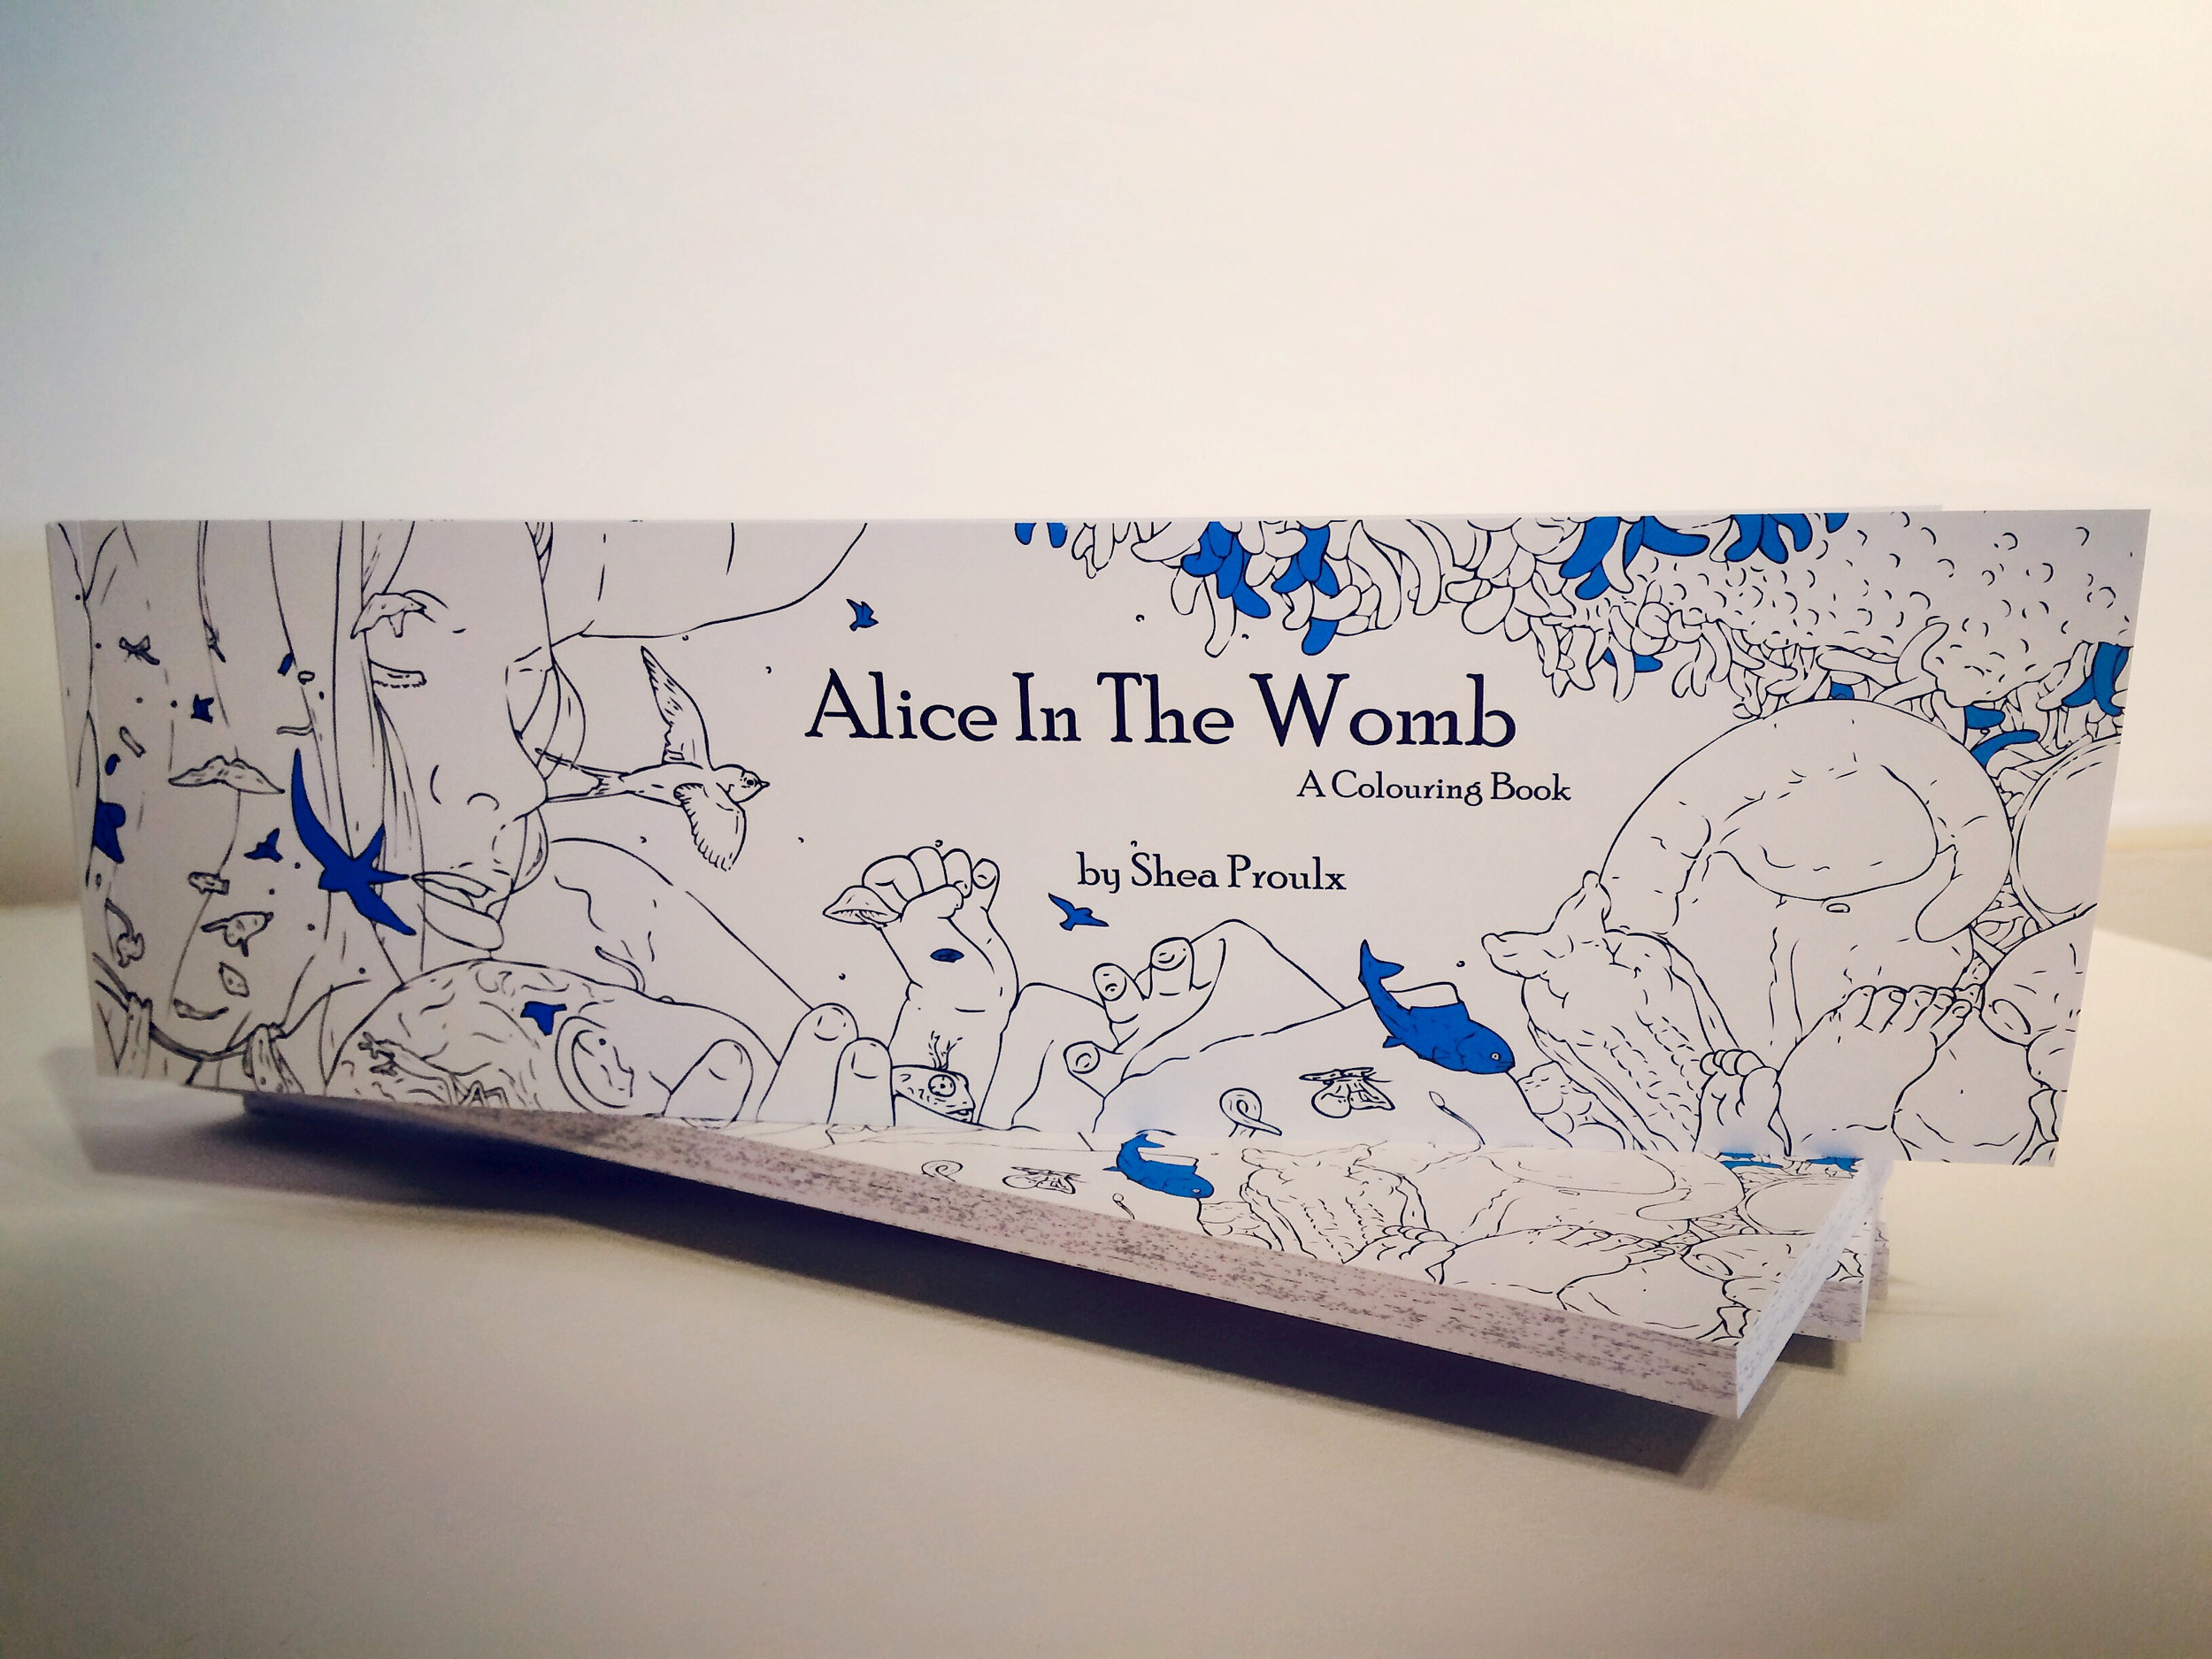 Alice In The Womb: a colouring book